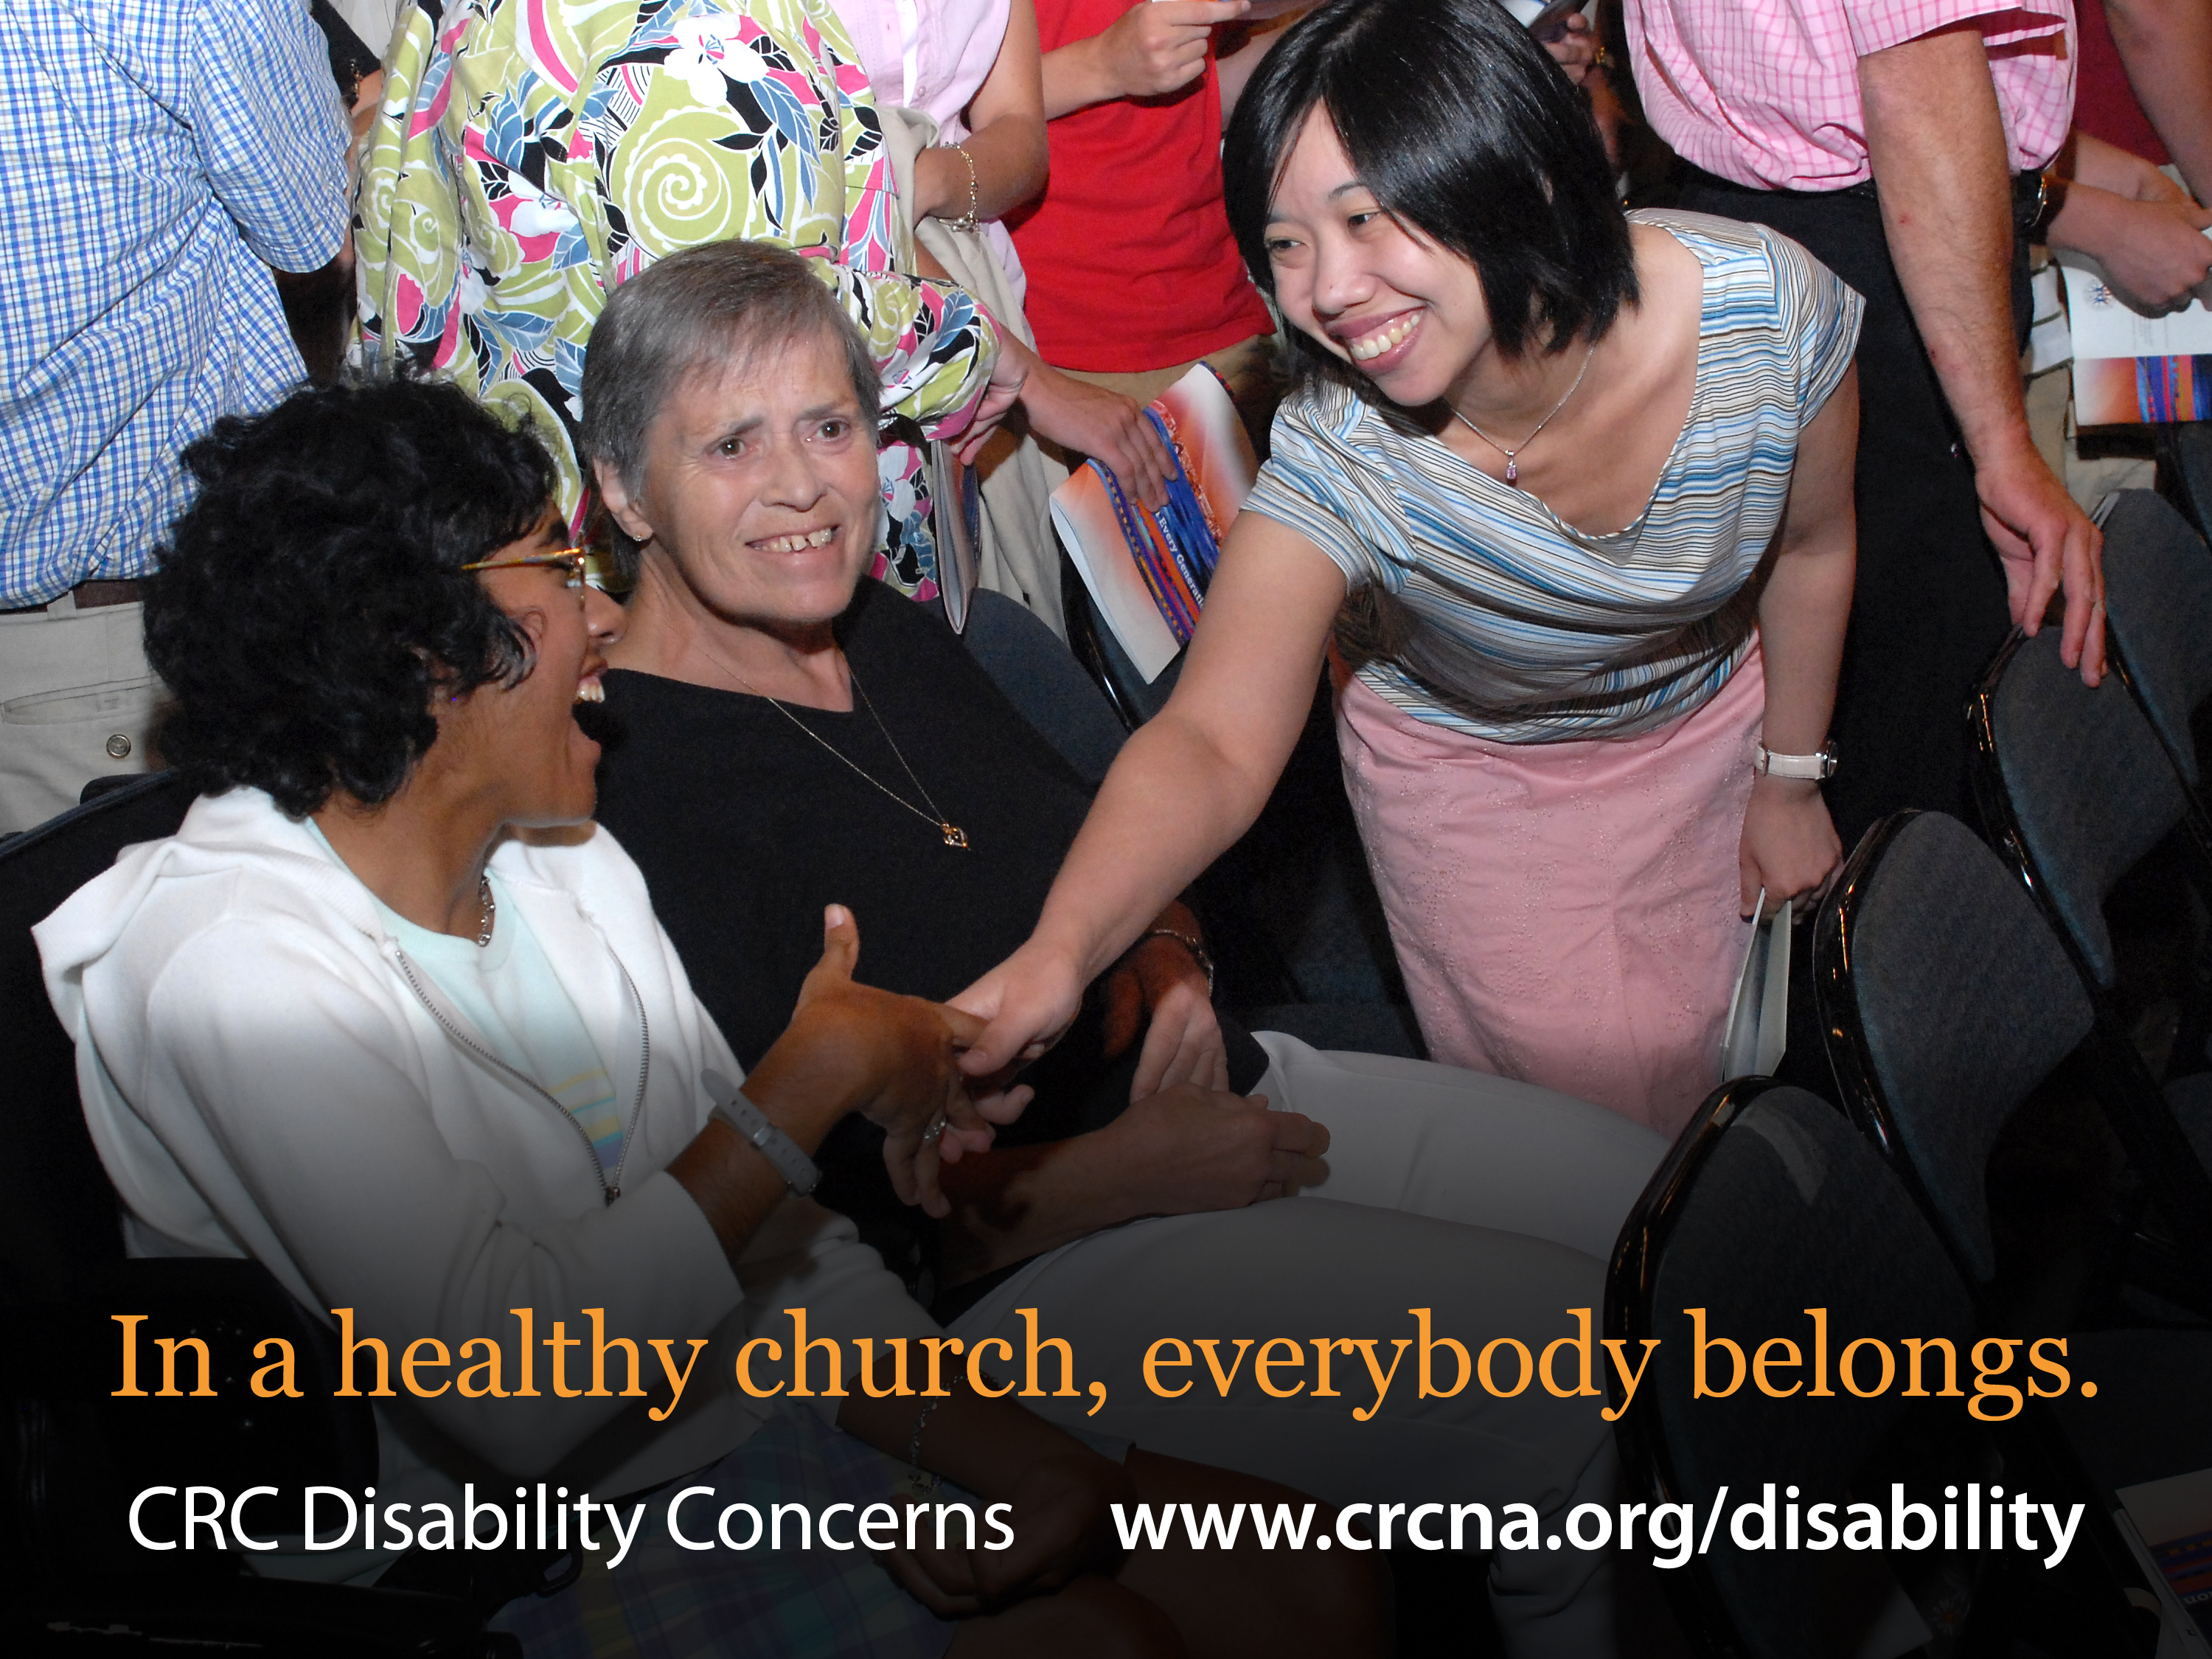 worshipers, including one who uses a wheelchair, greet one another